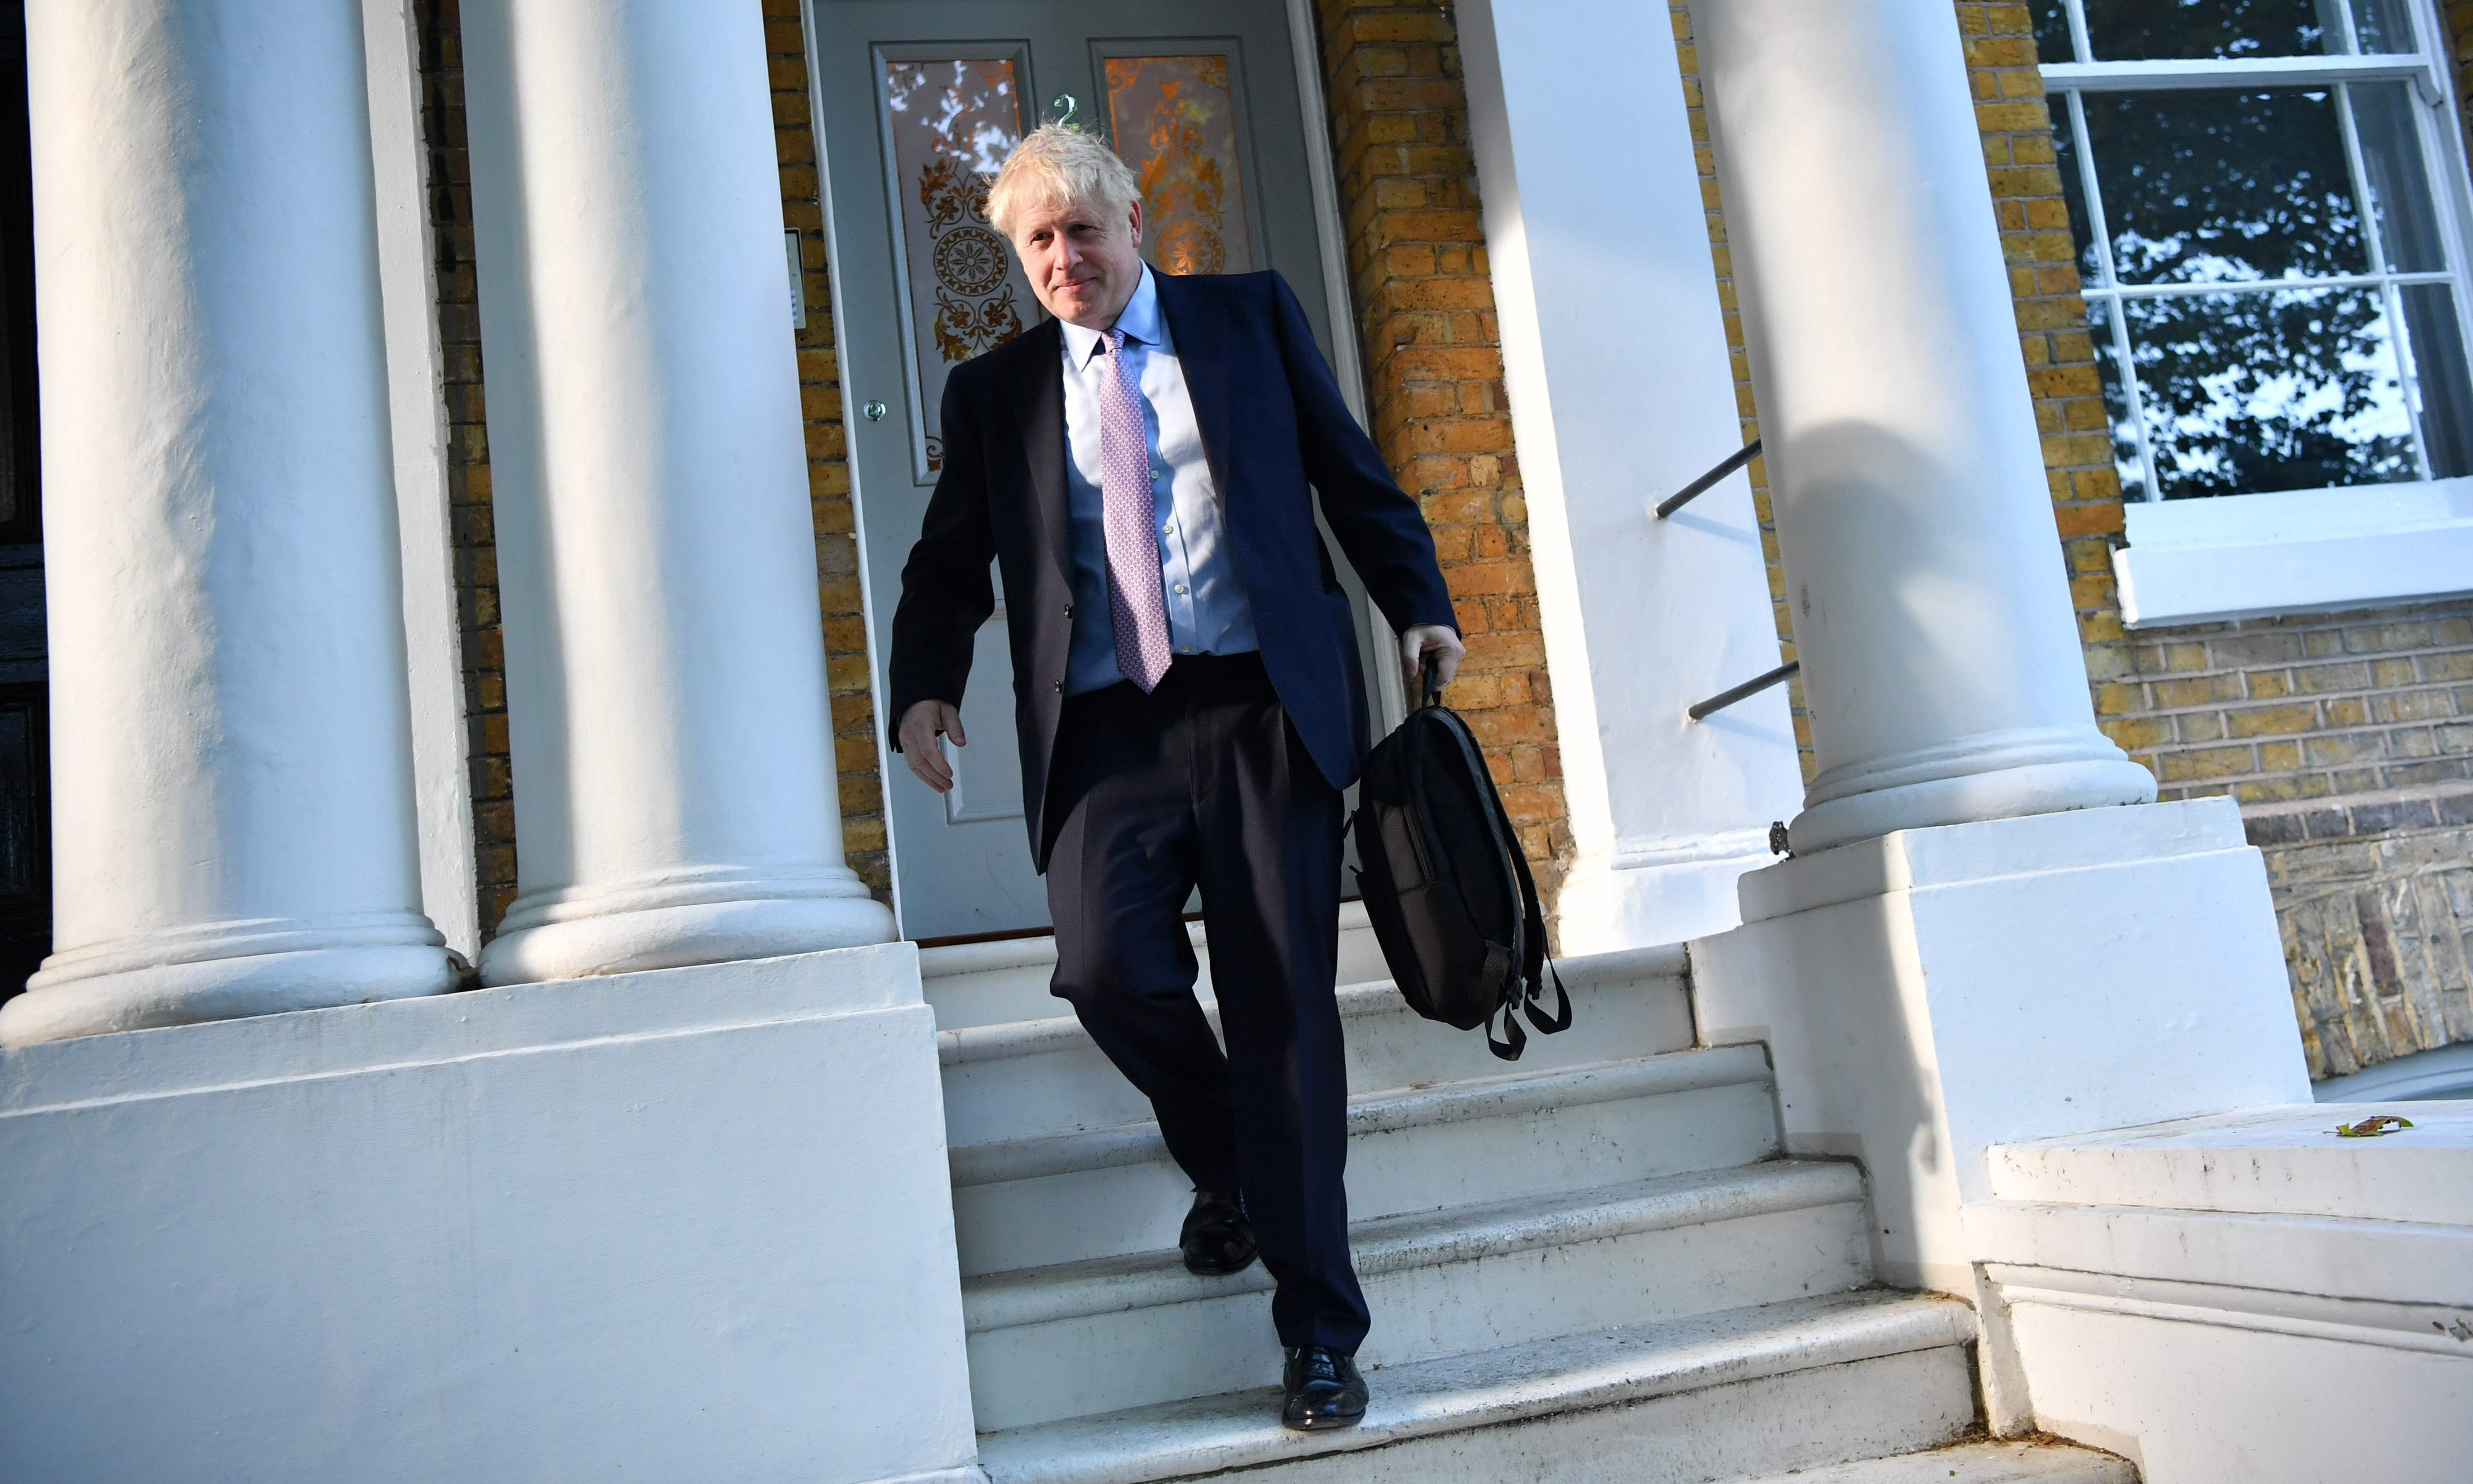 Boris Johnson: police called to loud altercation at potential PM's home